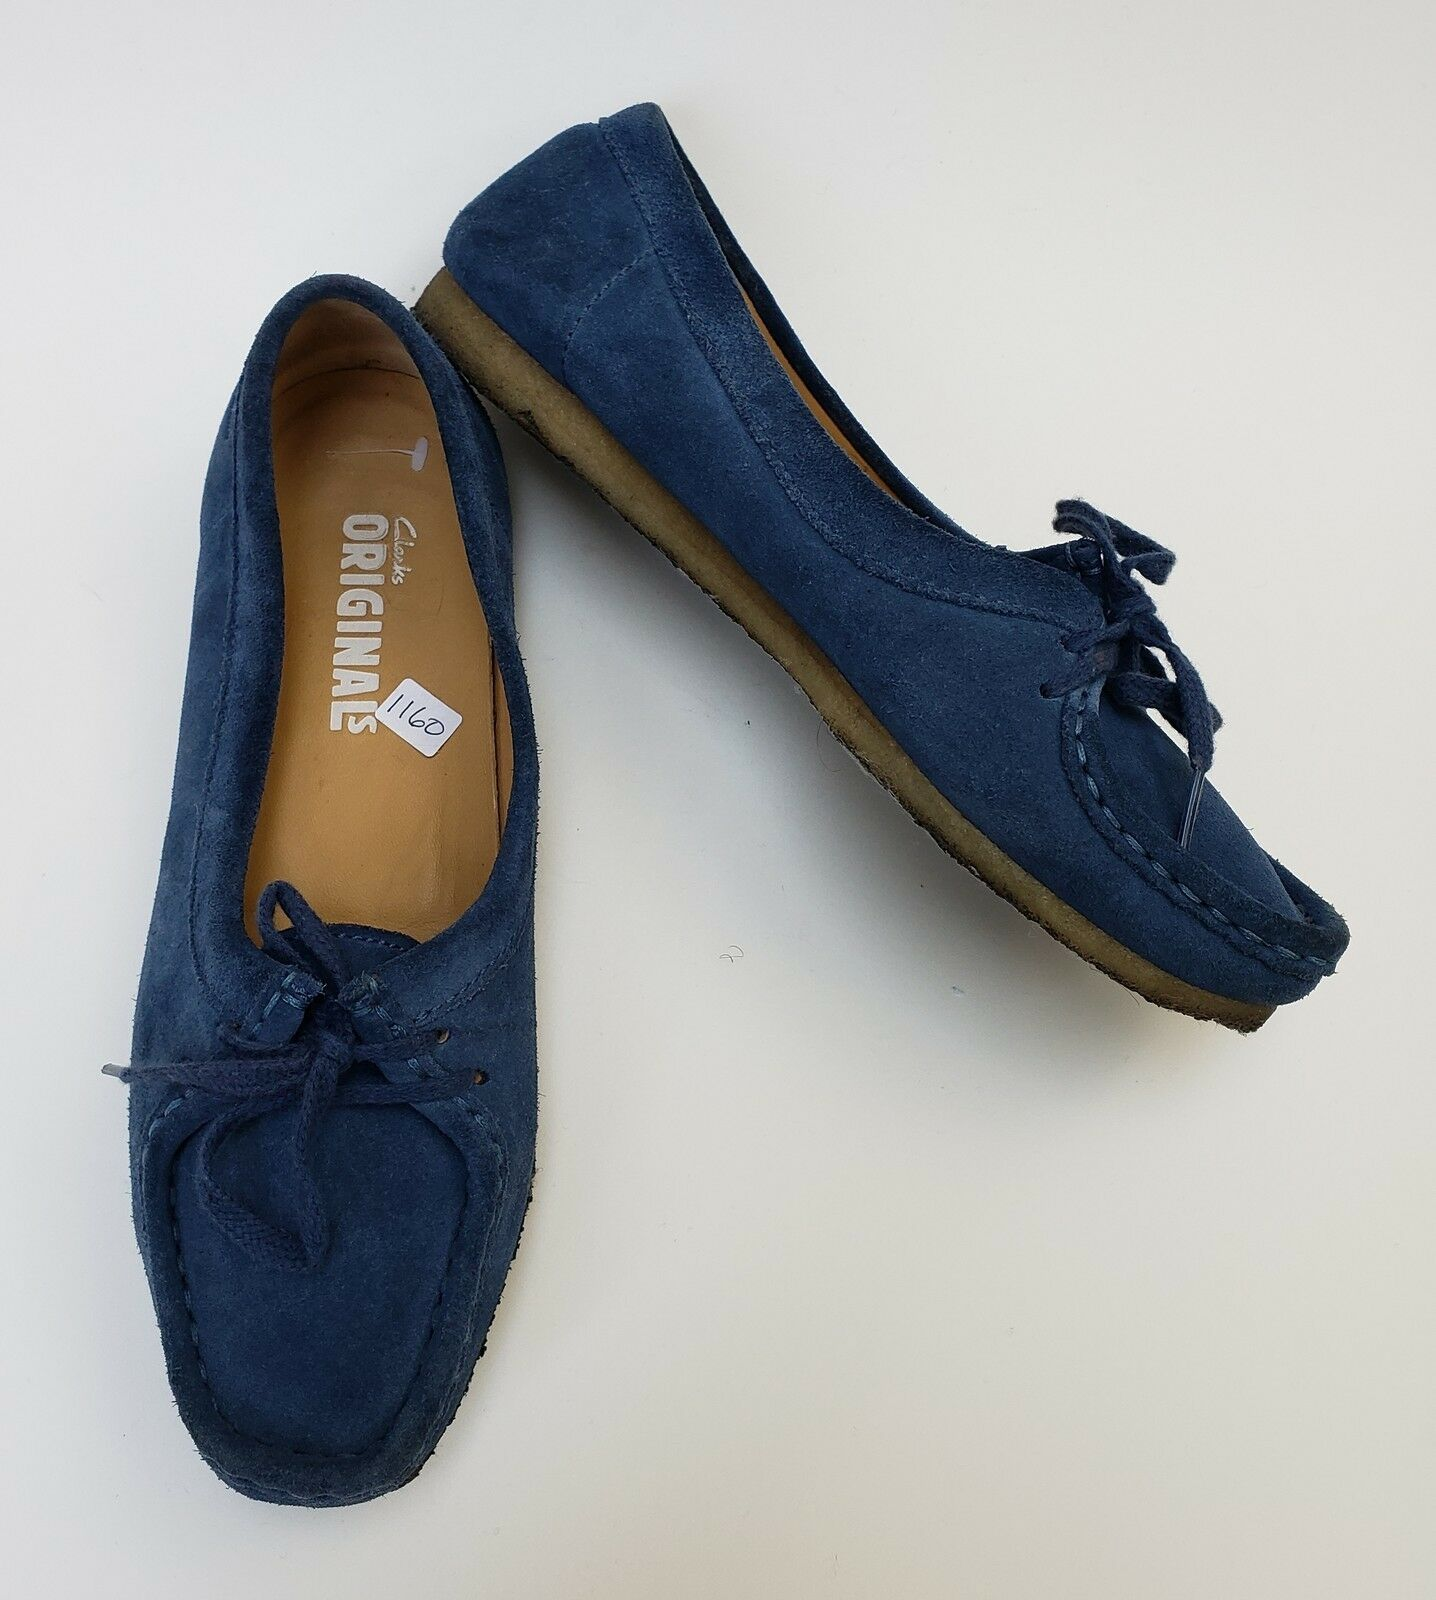 Clarks shoes Flats Wallabee bluee Suede Lace Up Originals Womens Size 9 M